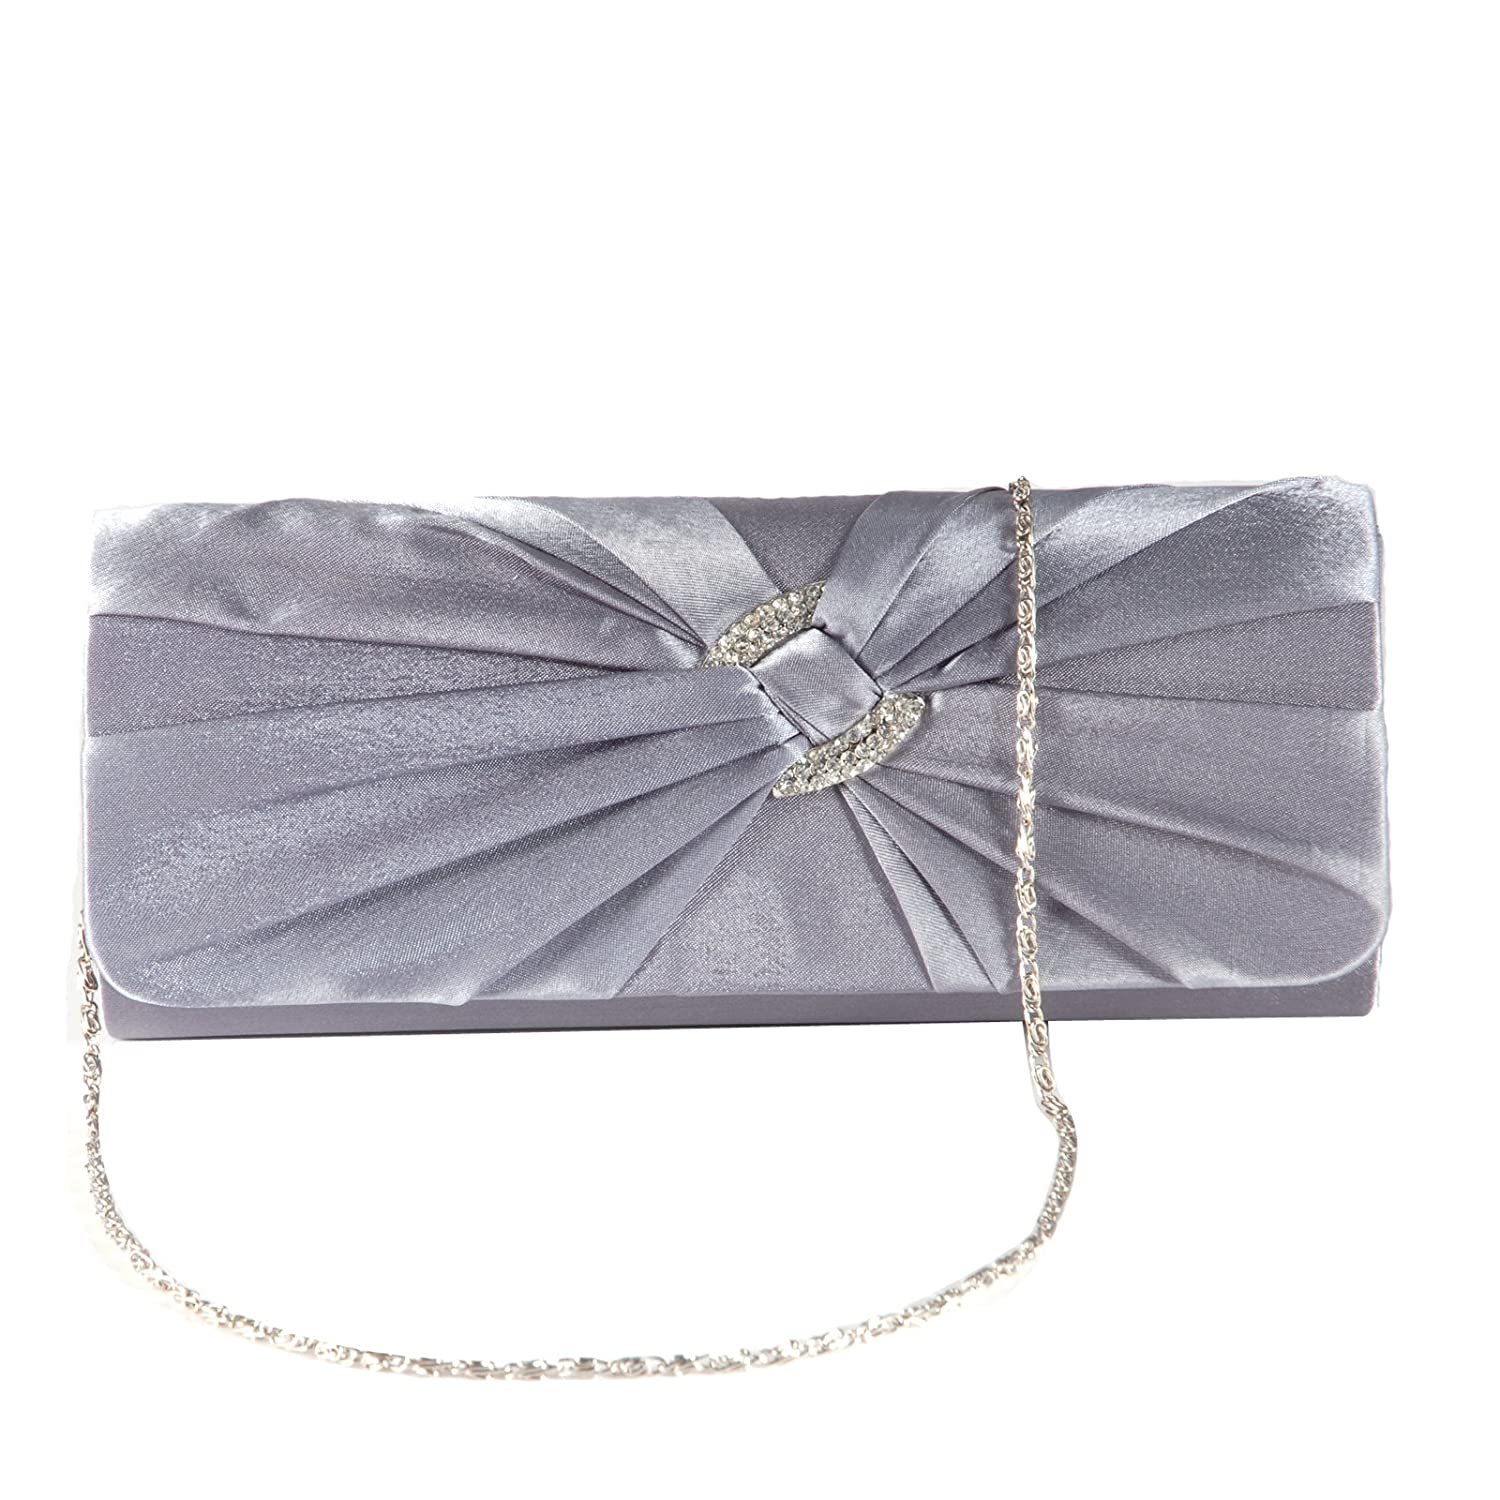 0129ae65aa9 Anladia Satin Diamante Pleated Evening Clutch Bag Bridal Handbag Prom Purse  (Dark Grey): Amazon.co.uk: Shoes & Bags